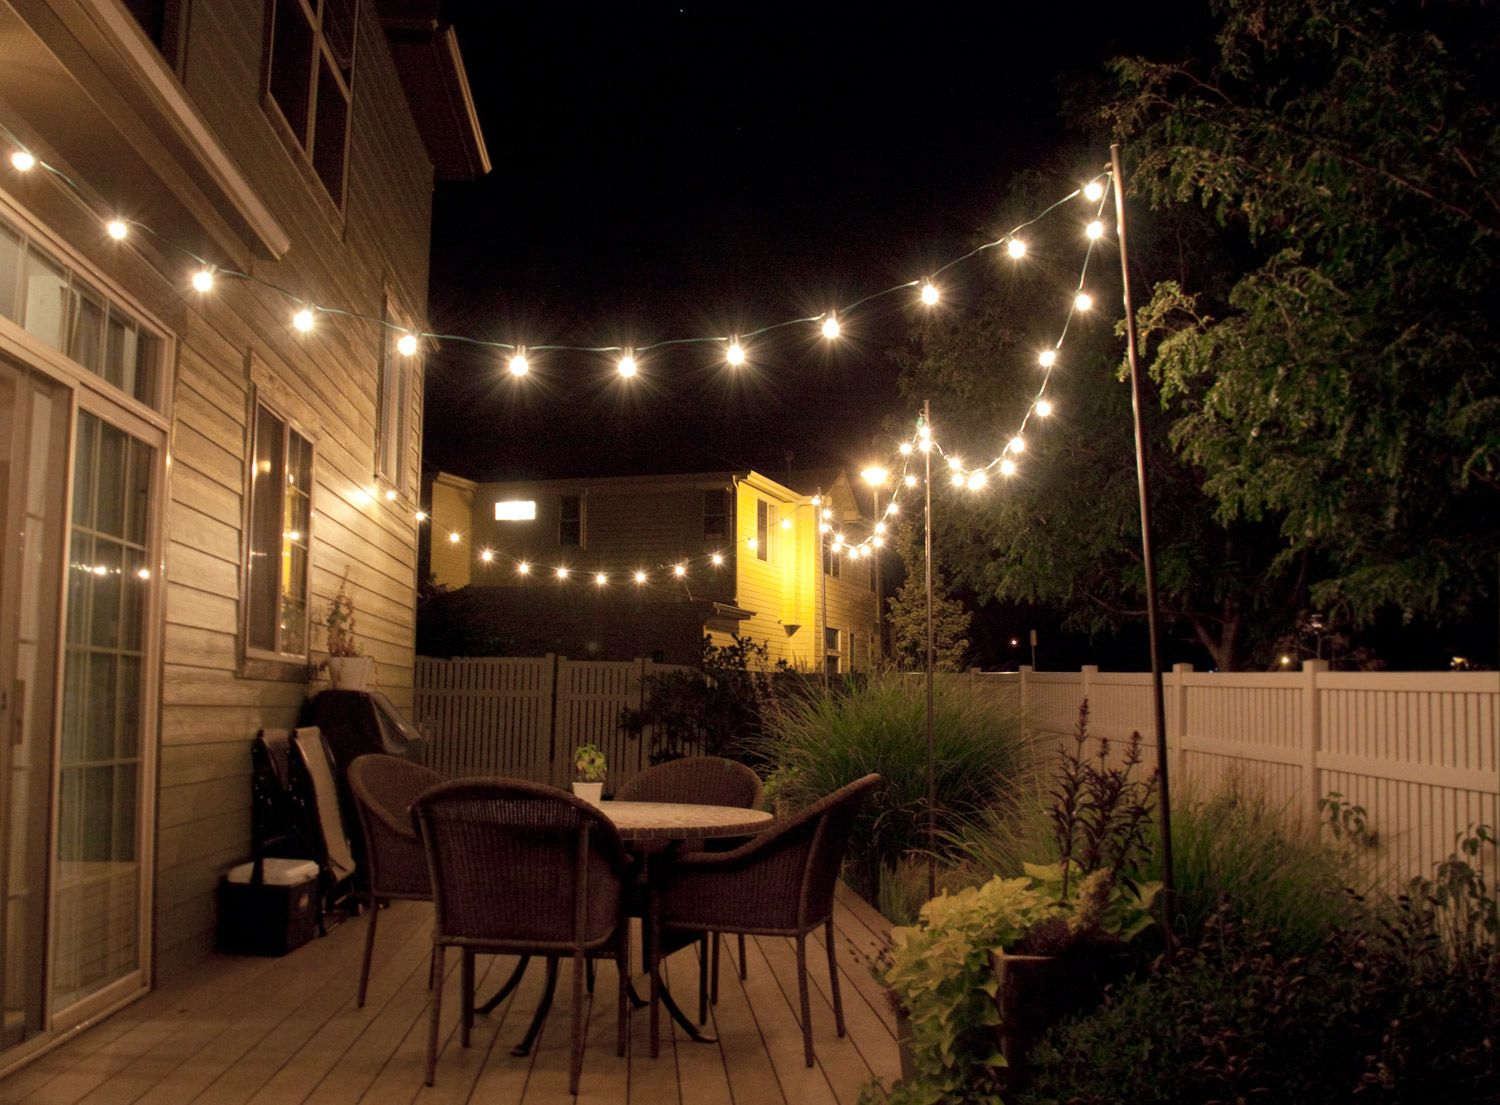 Charmant How To Make Inexpensive Poles To Hang String Lights On   Café Style! Via  Bright